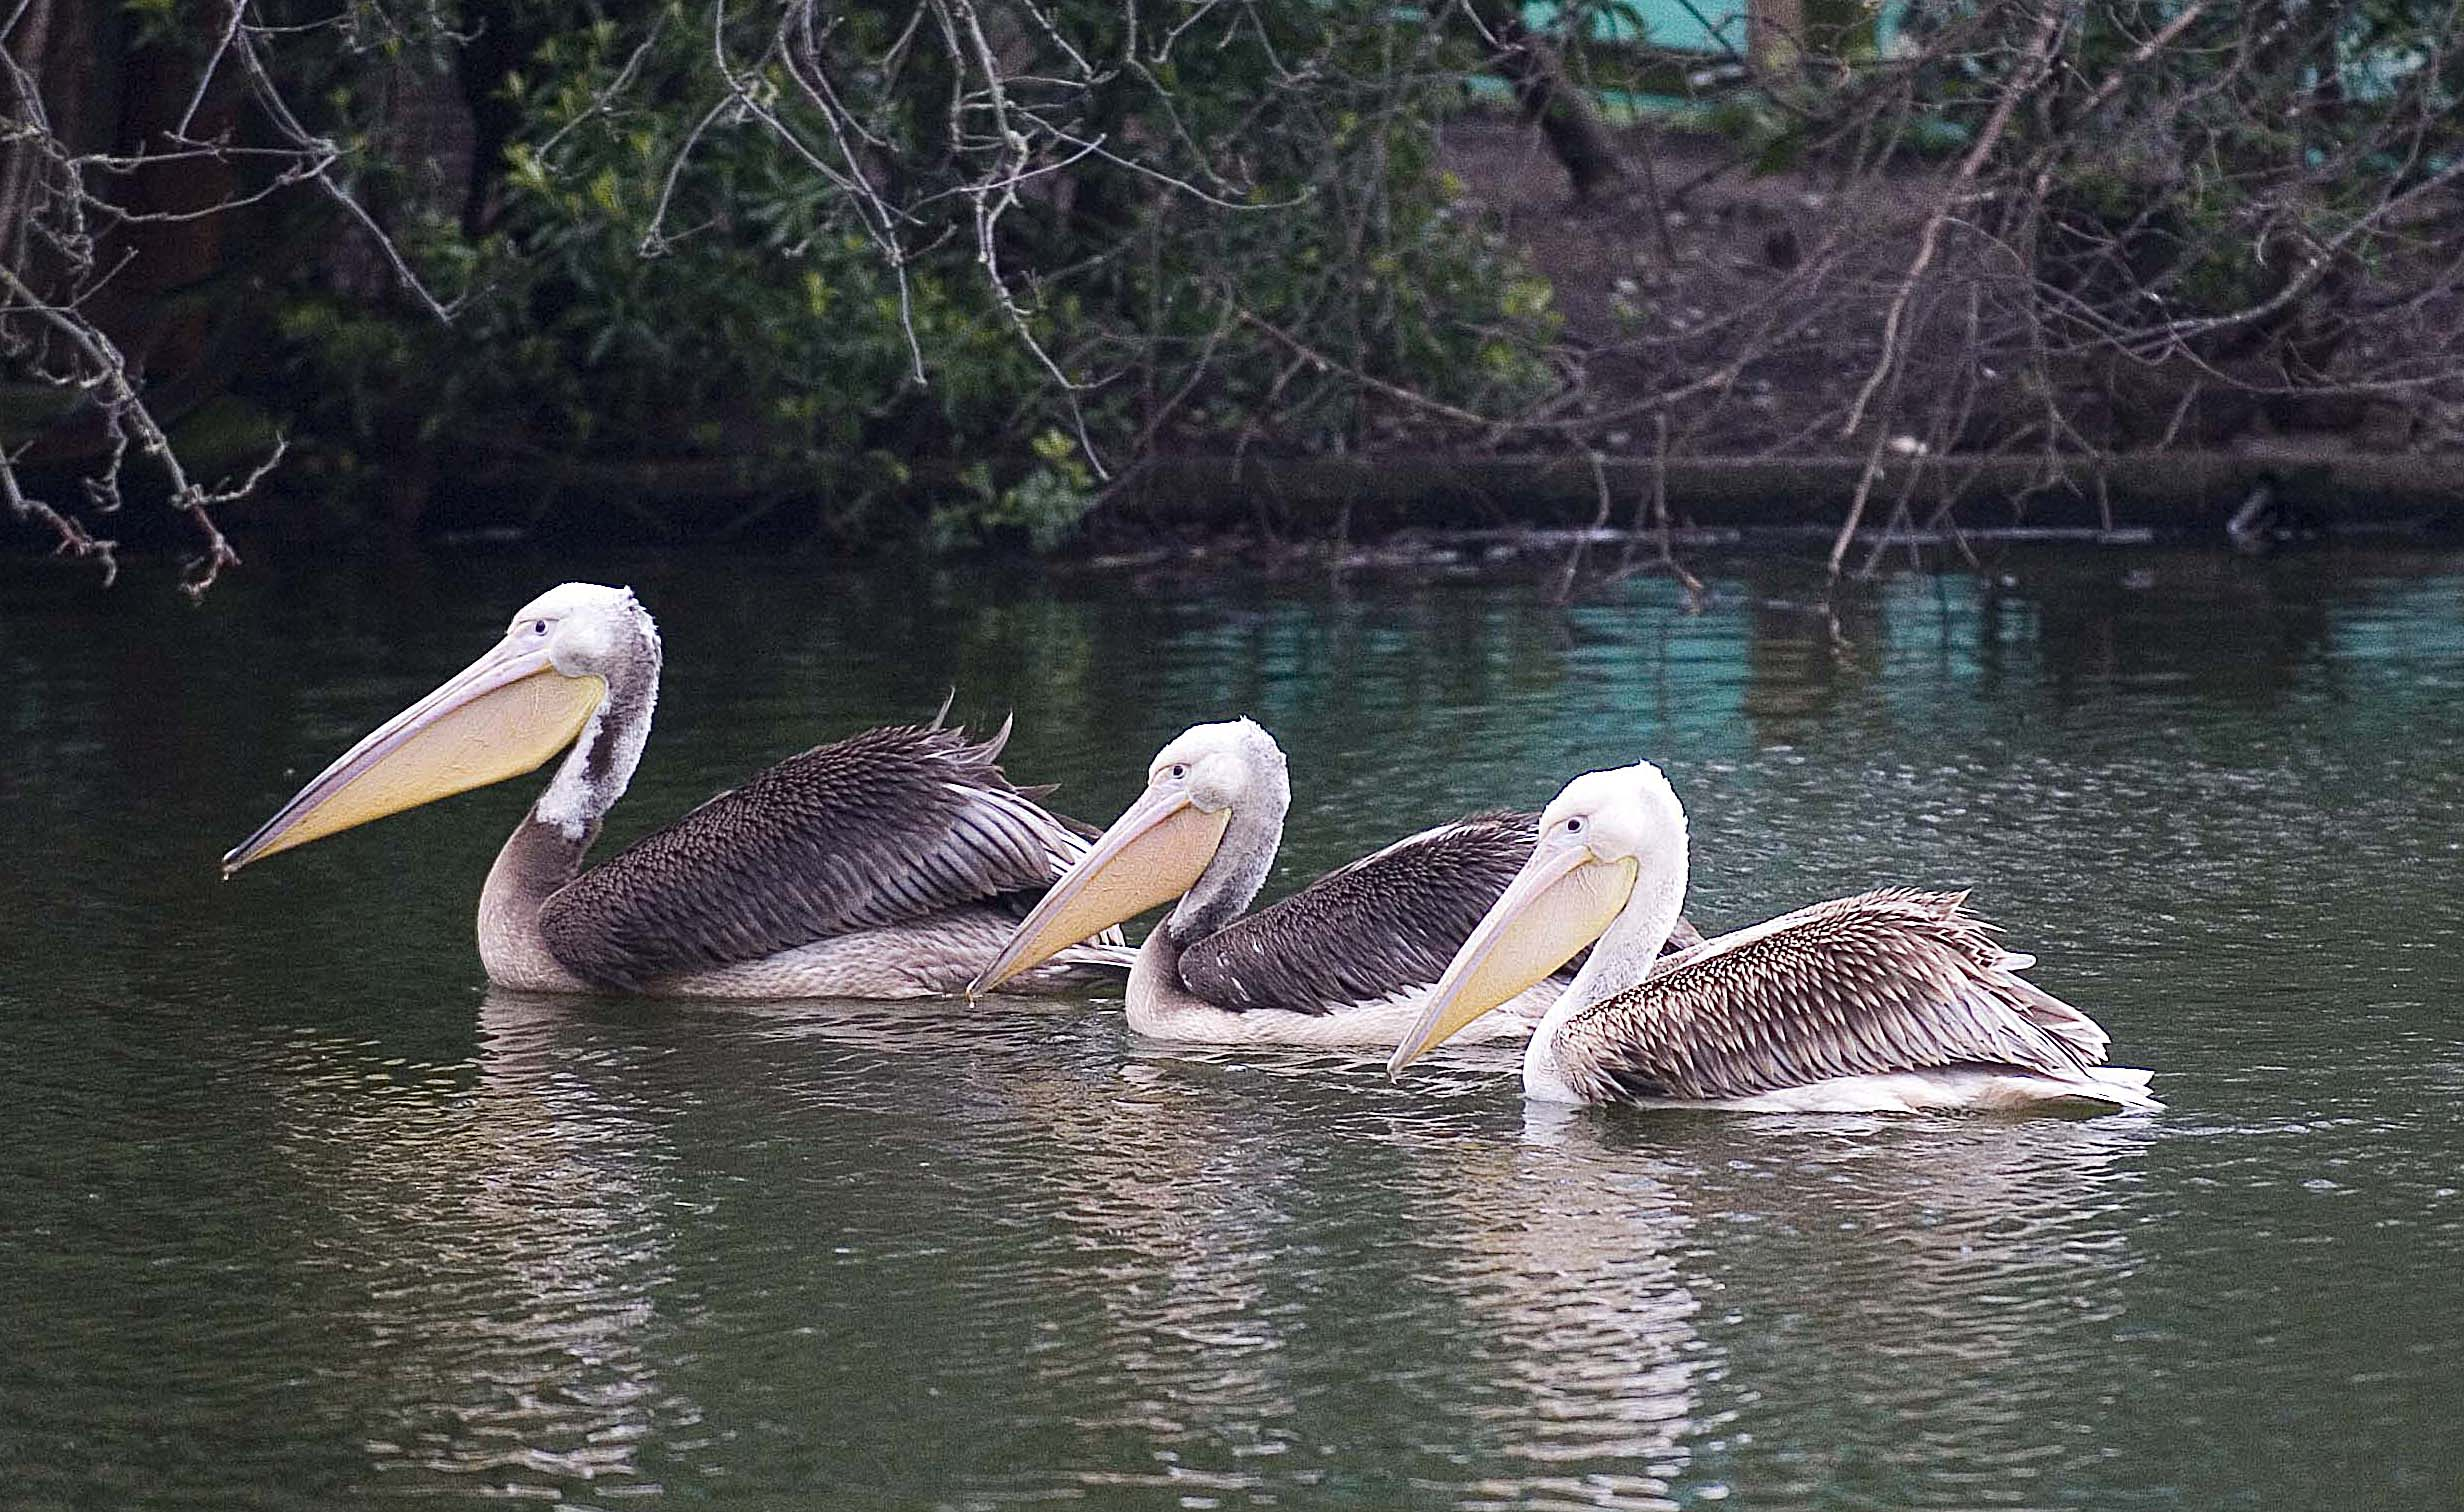 New arrivals for St James's Park as three Great White pelicans take up residence in front of Buckingham Palace